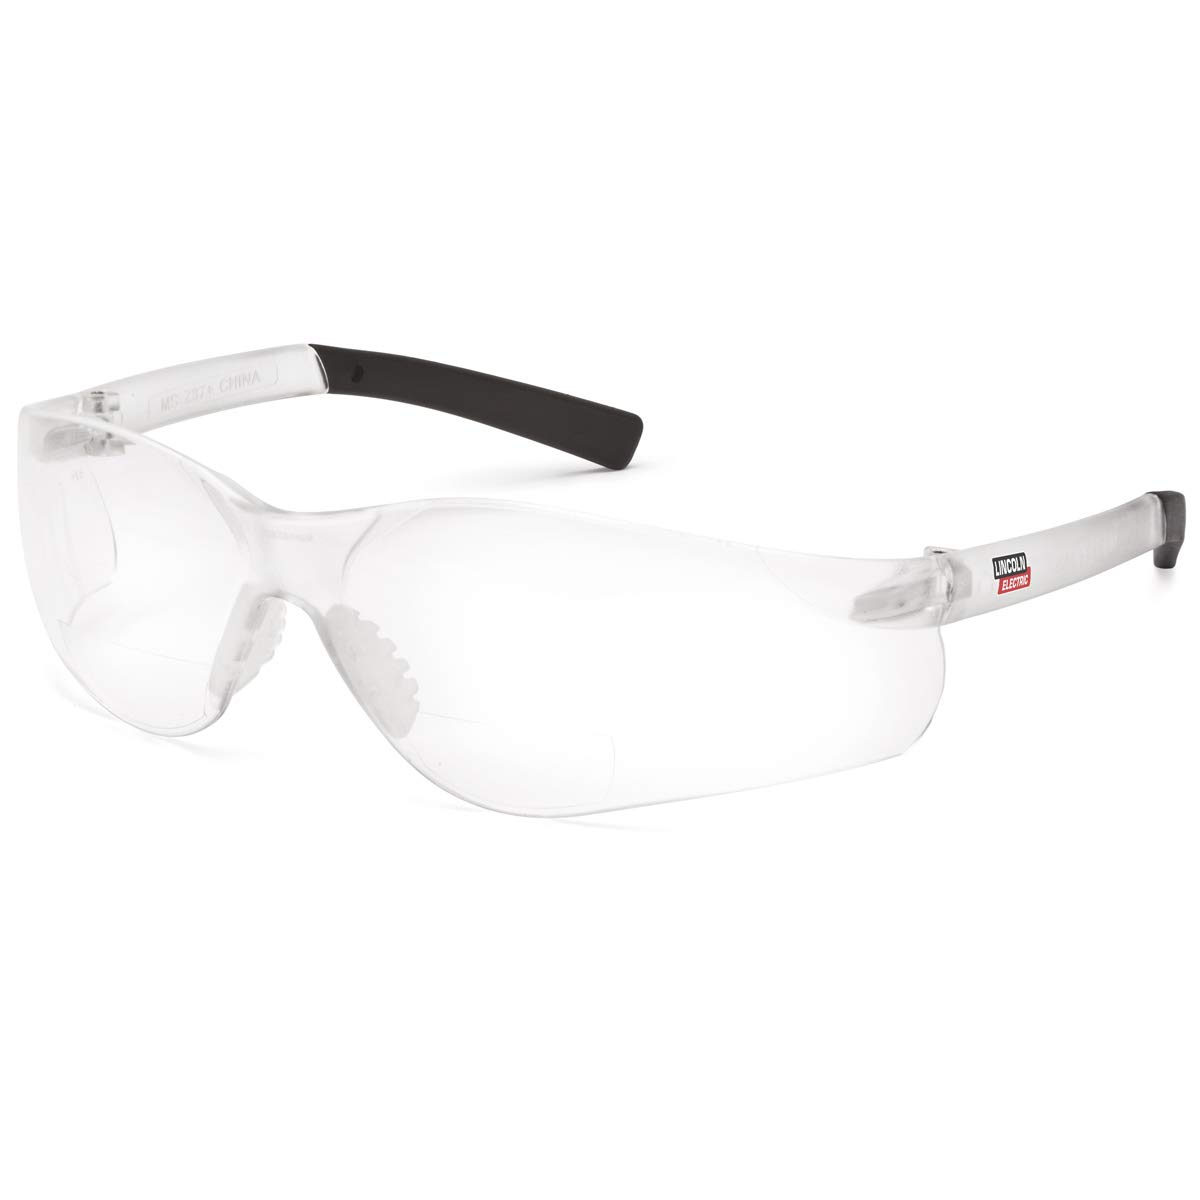 Lincoln Electric Bifocal Safety Glasses | 1.50 Diopter | Soft Rubber Overmolded Frame | Clear Lens |